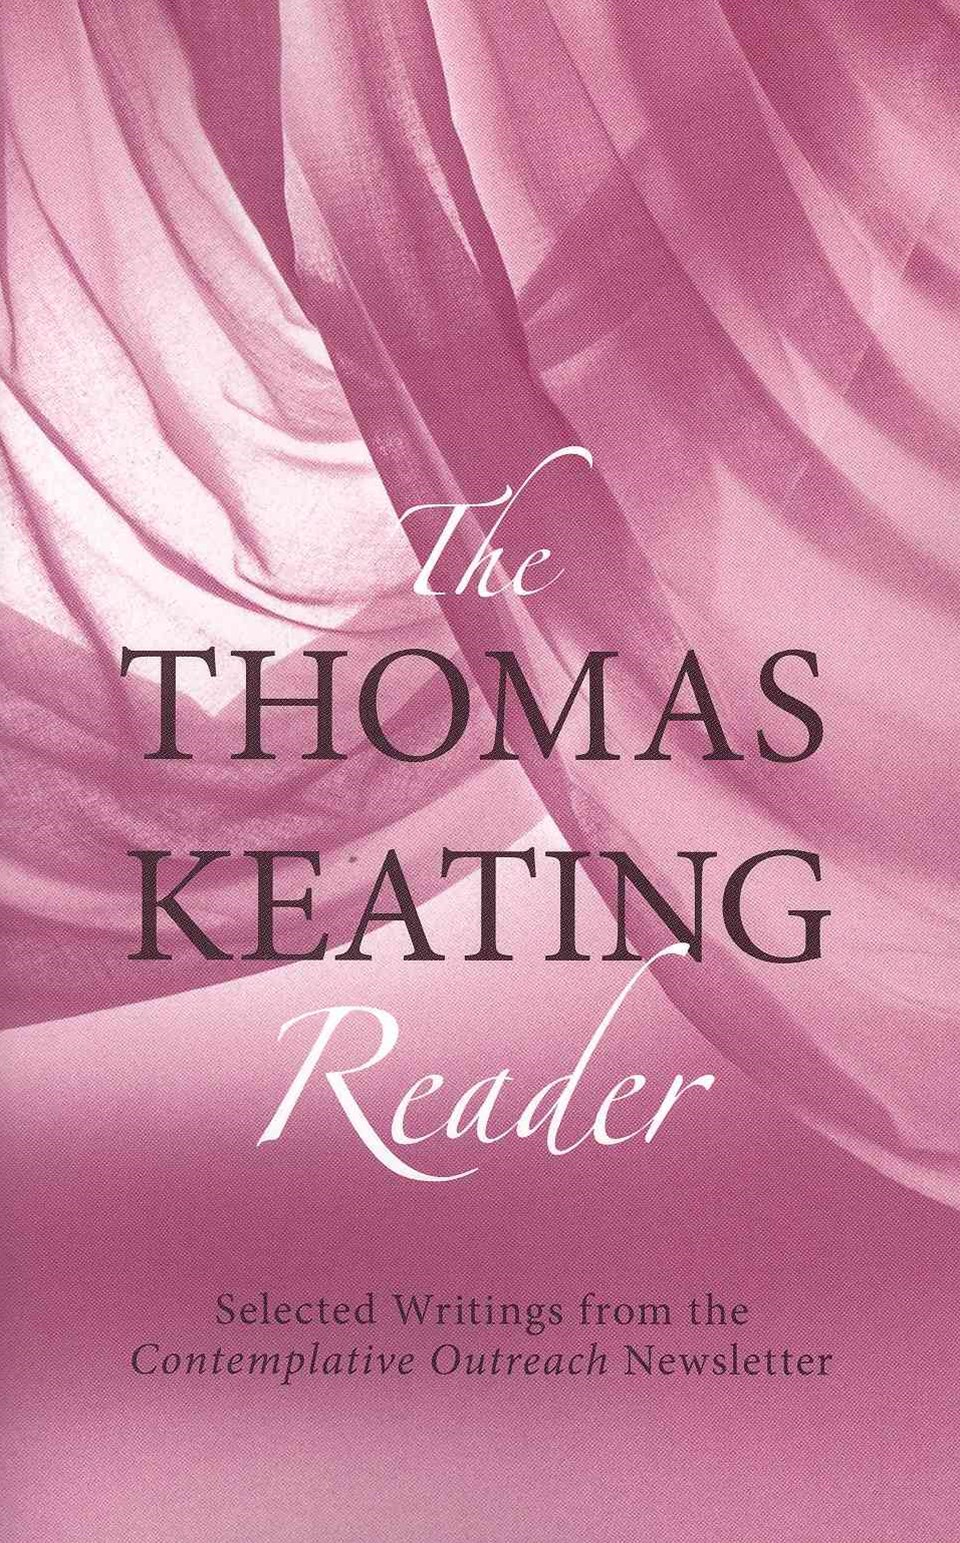 Thomas Keating Reader